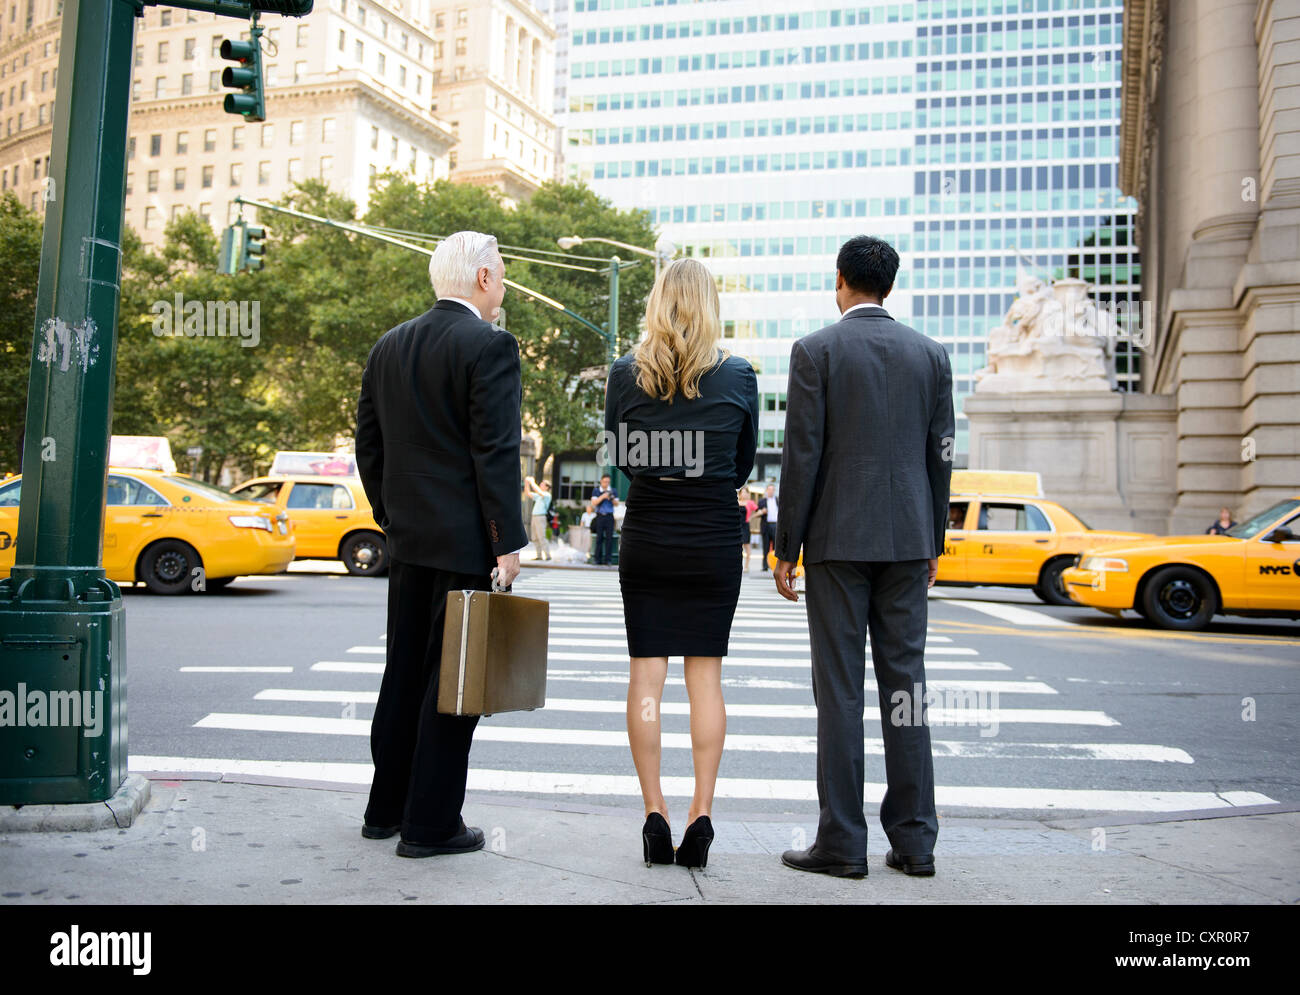 Rear view of three businesspeople at crossing on a New York City street - Stock Image